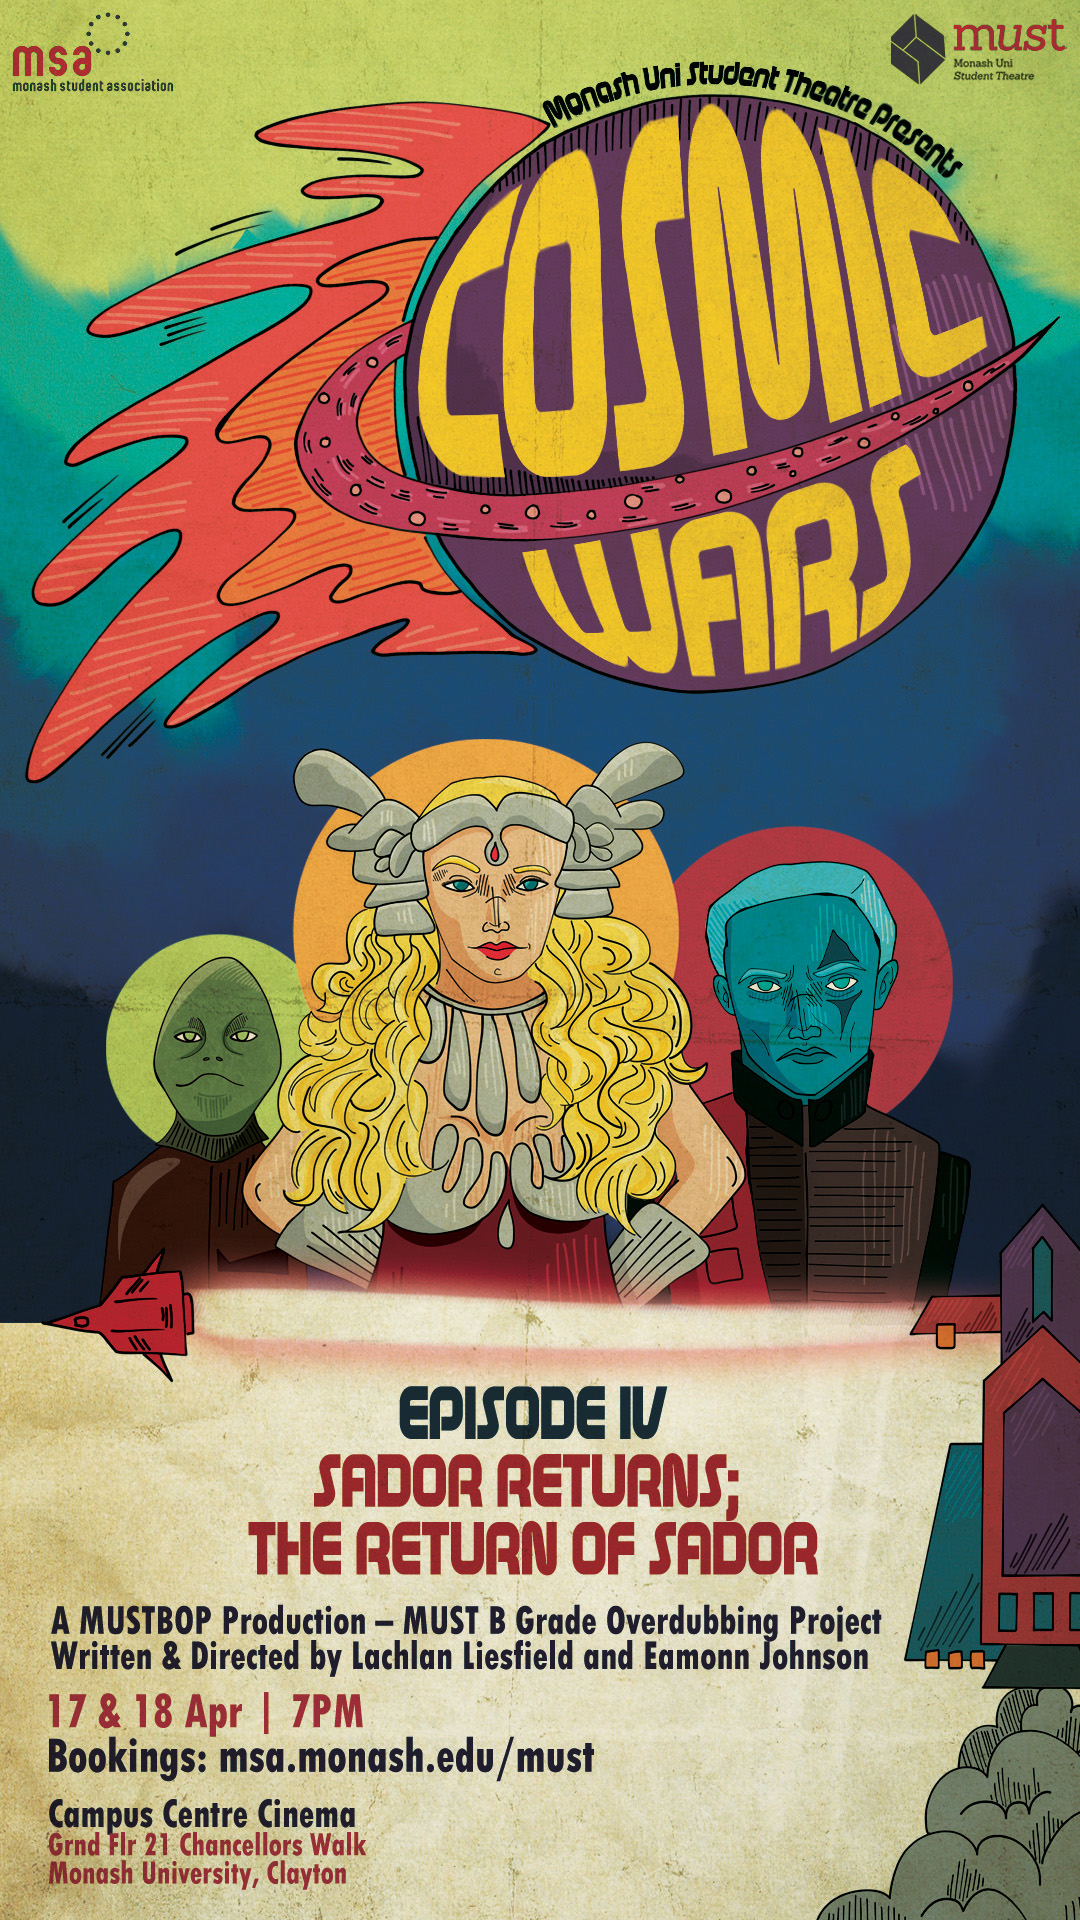 COSMIC WARS: Episode IV—Sador Returns; The Return of Sador